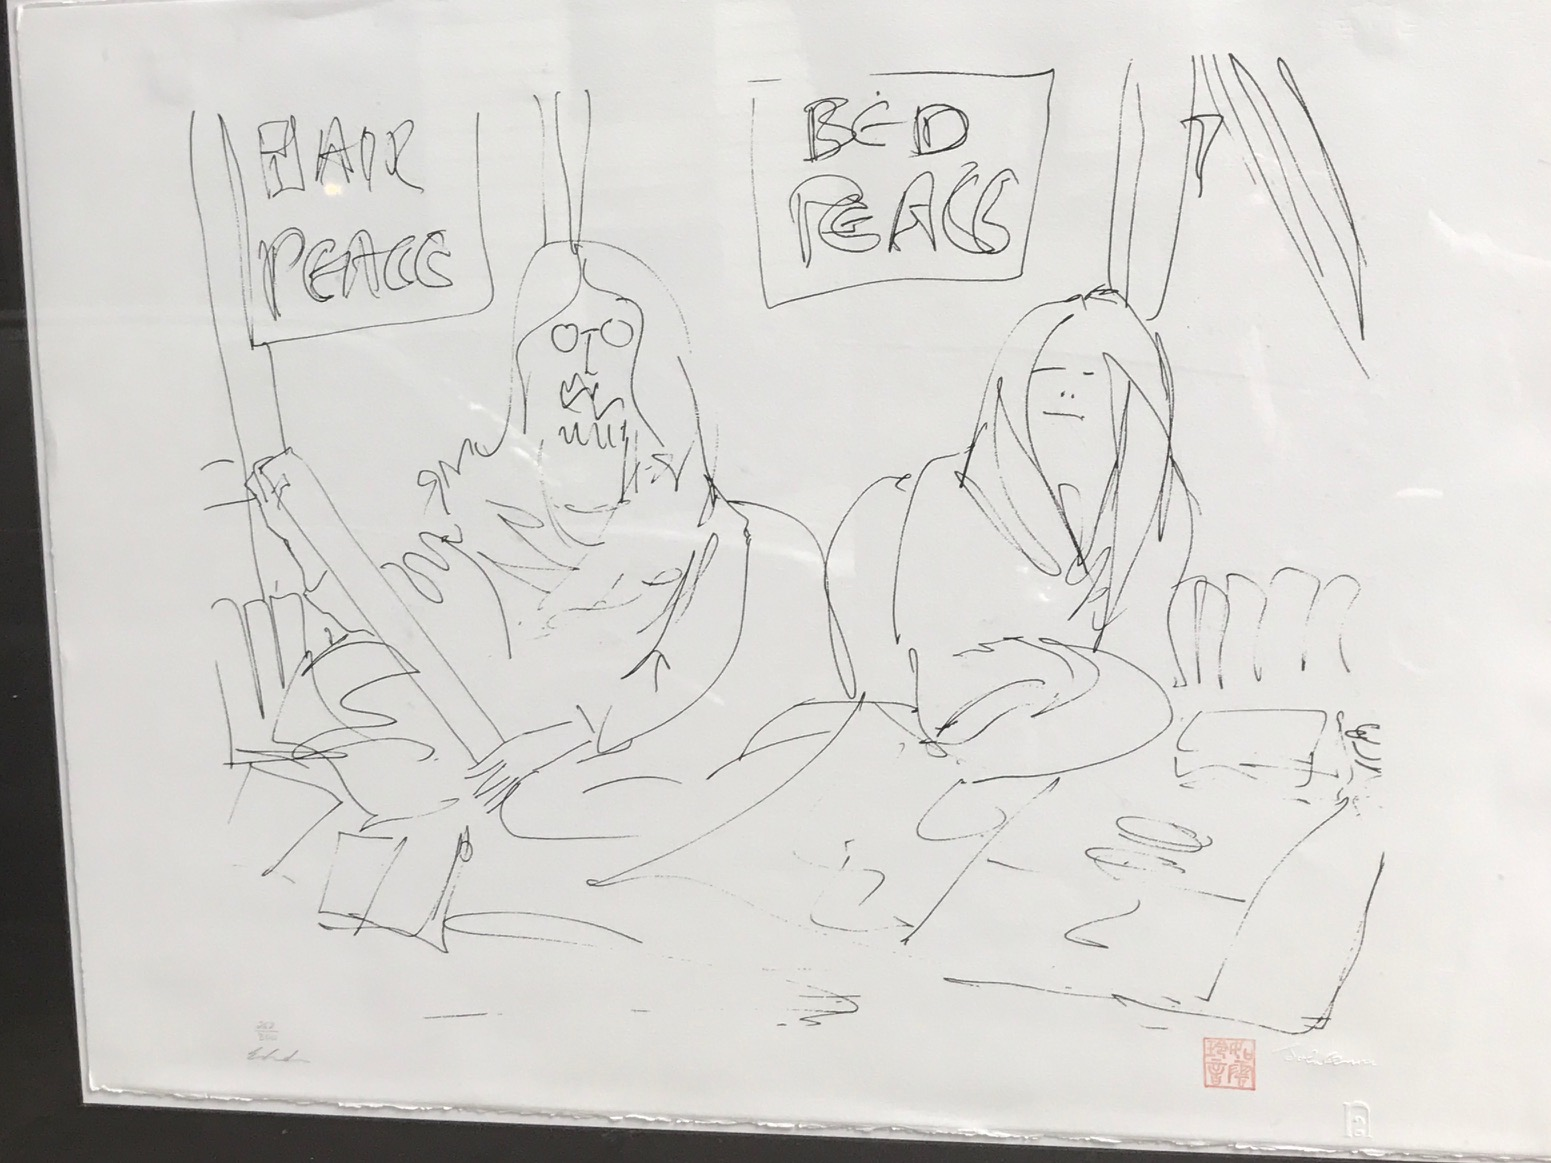 We Made Our Bed artwork by John Lennon - art listed for sale on Artplode